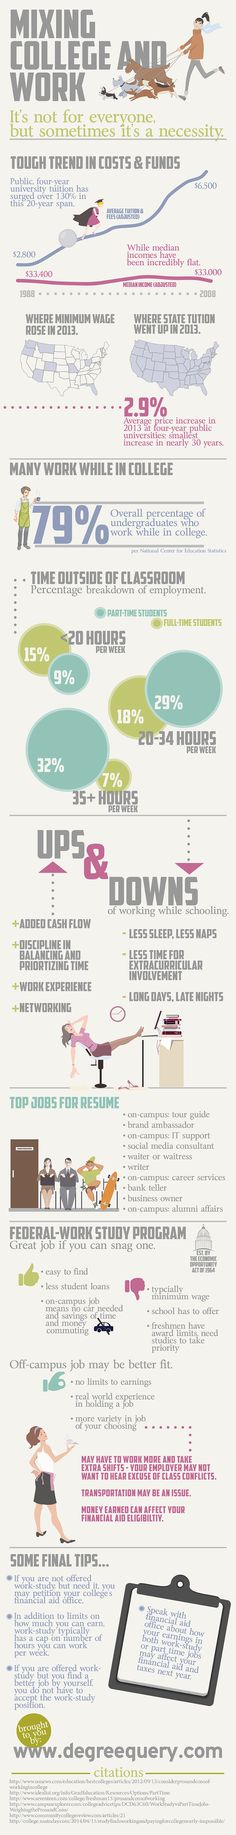 Mixing College and Work #Infographic. Finding ways to balance work and school can be tough!